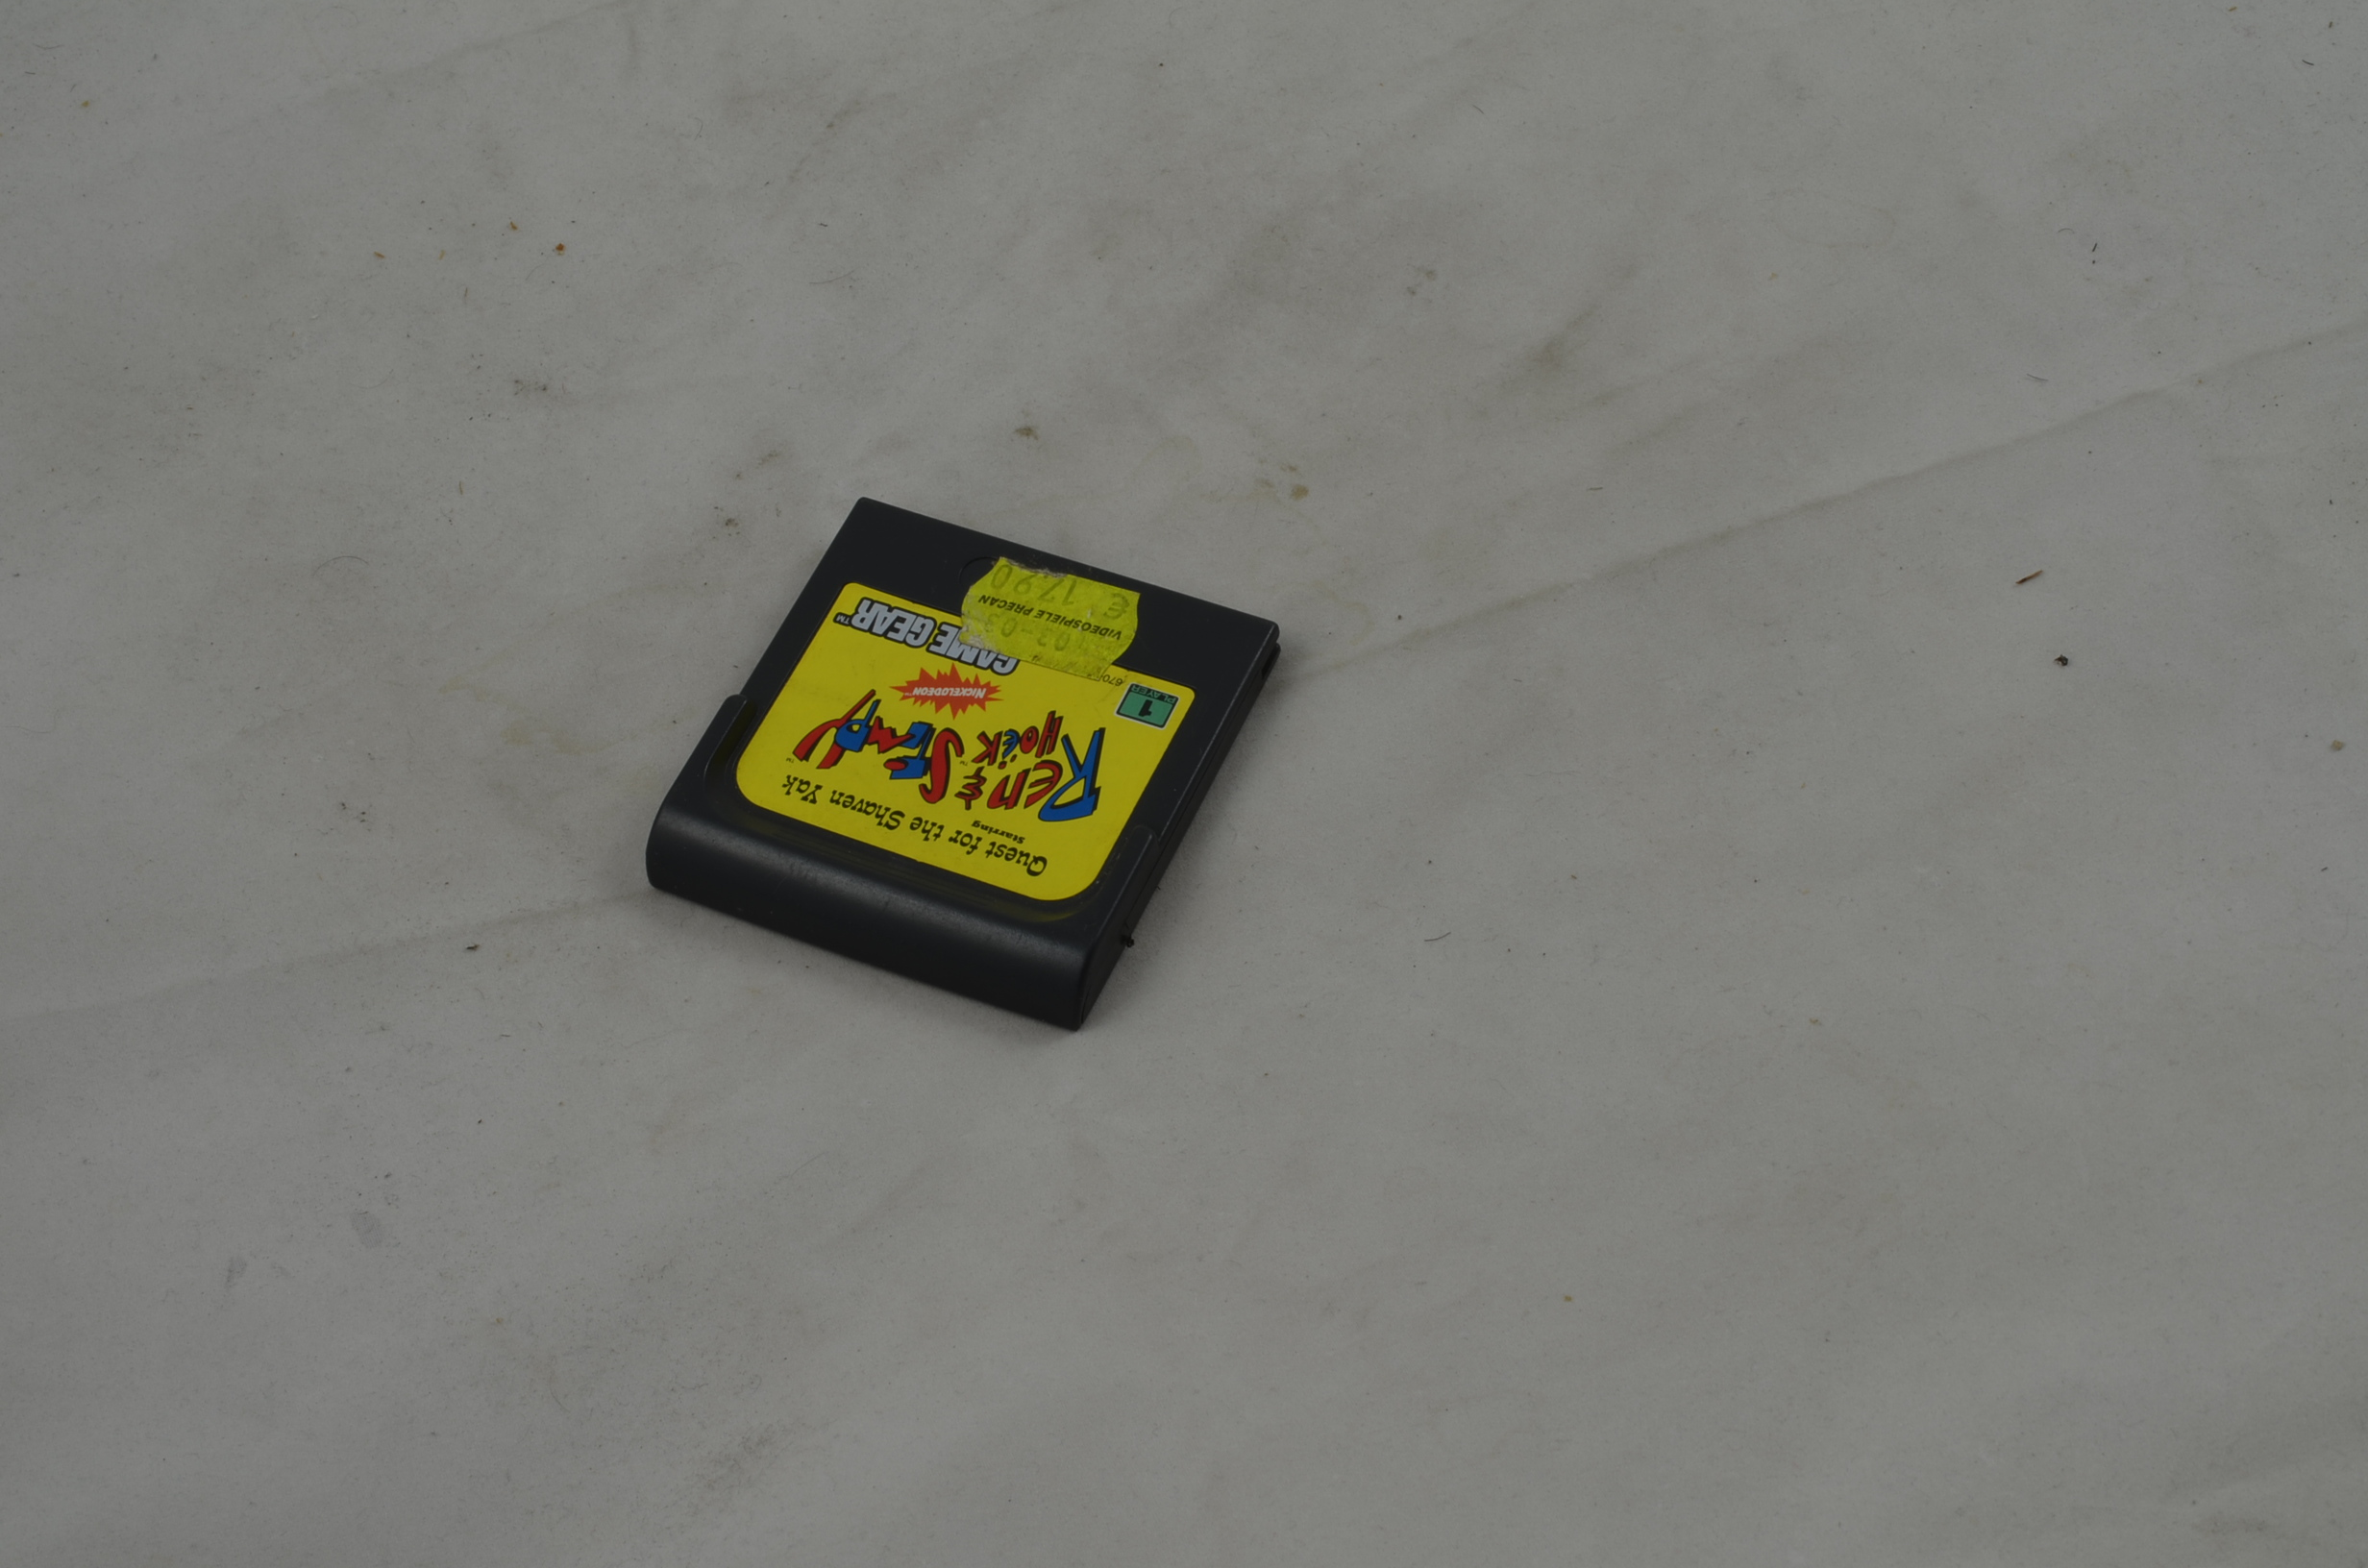 Produktbild von Ren and Stimpy Quest for the Shaven Yak Game Gear Spiel